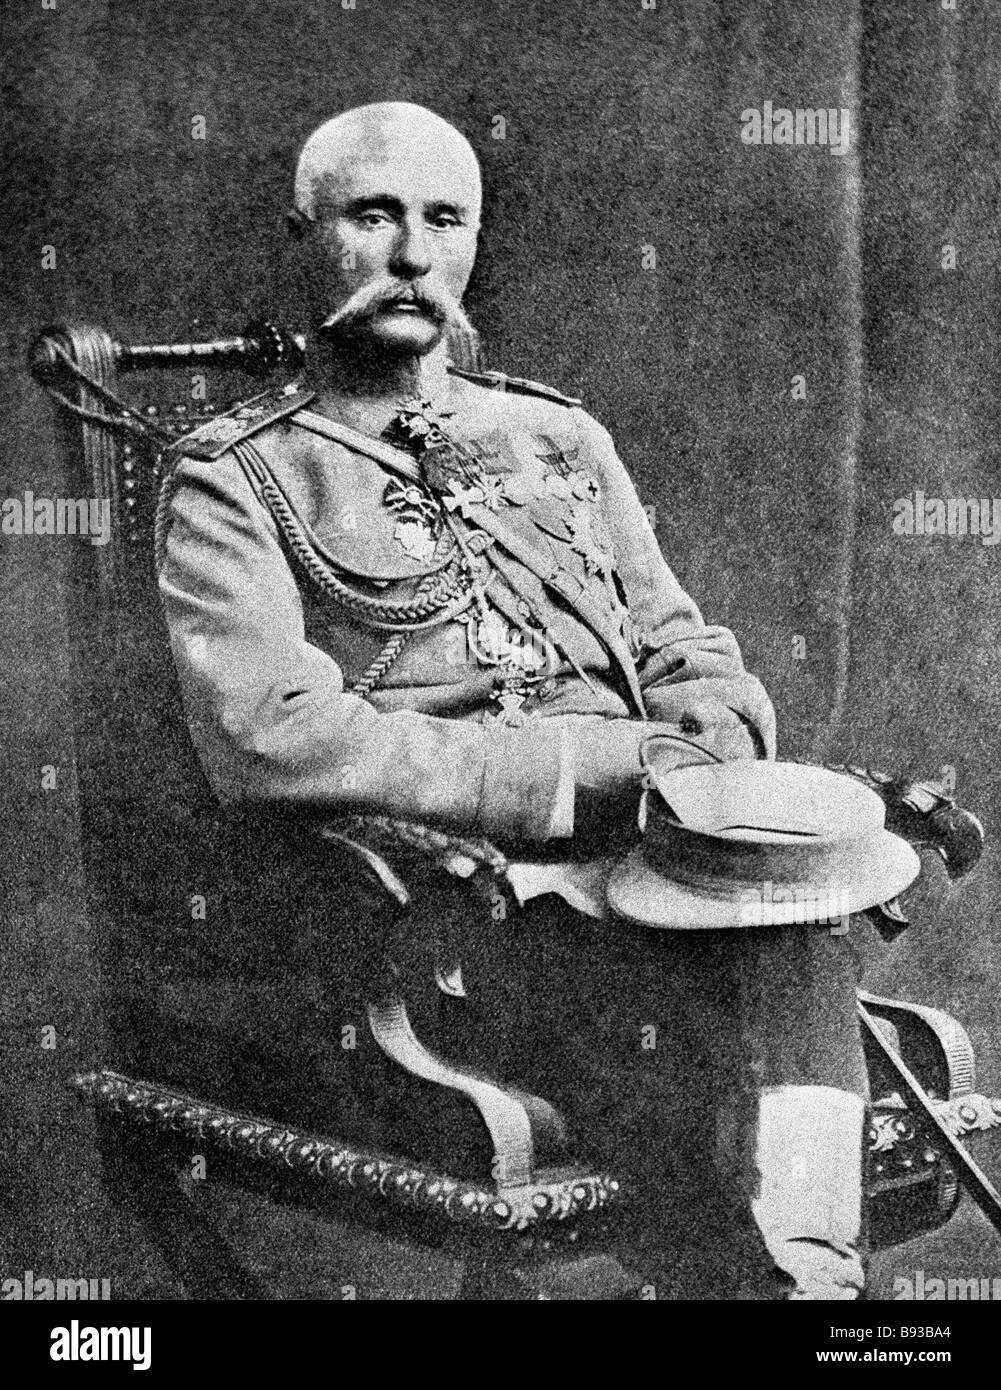 General of the Infantry Platon Lechitsky 1856 1923 commanded the 9th Army Corps active on the Southwestern Front - Stock Image